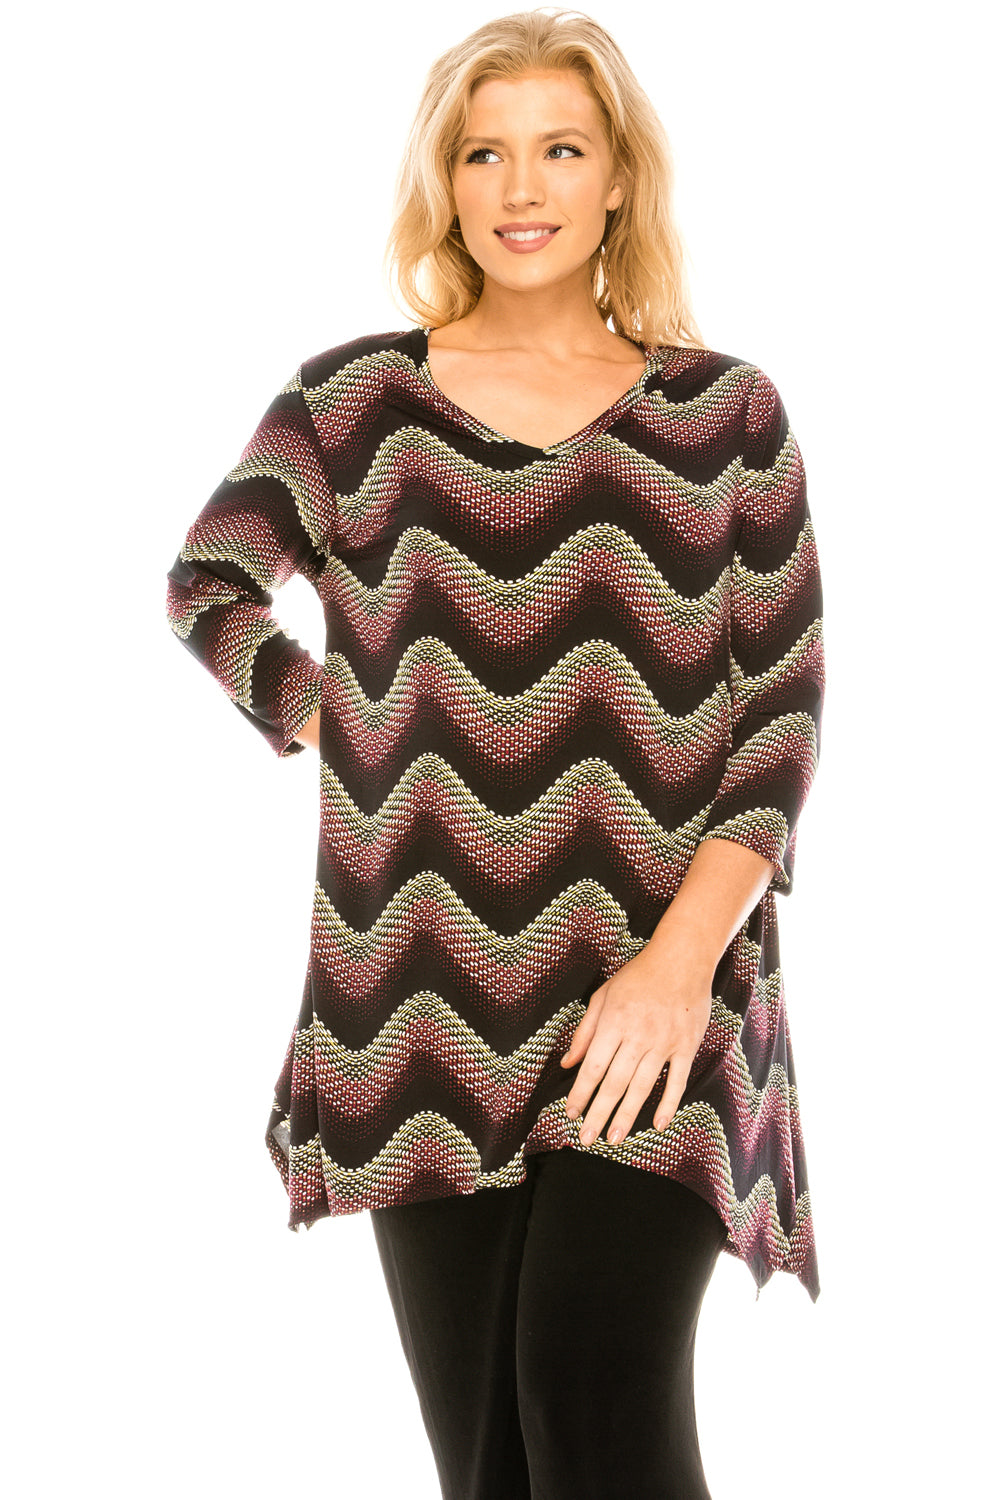 Jostar Women's HIT V-Neck Binding Top Half Sleeve Print, 313HT-QP-W119 - Jostar Online